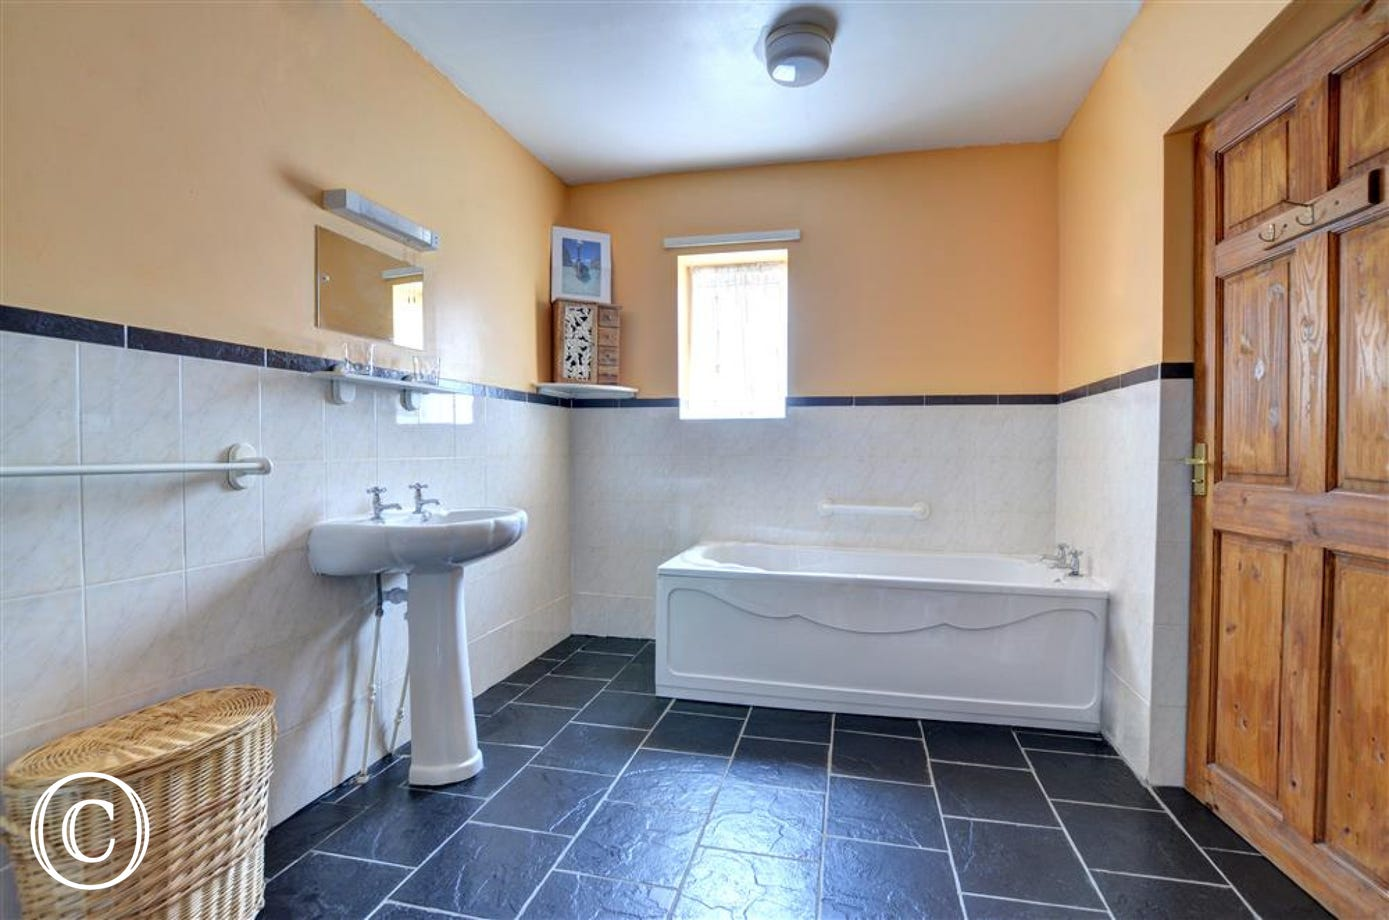 Family bathroom has a bath and is very spacious.